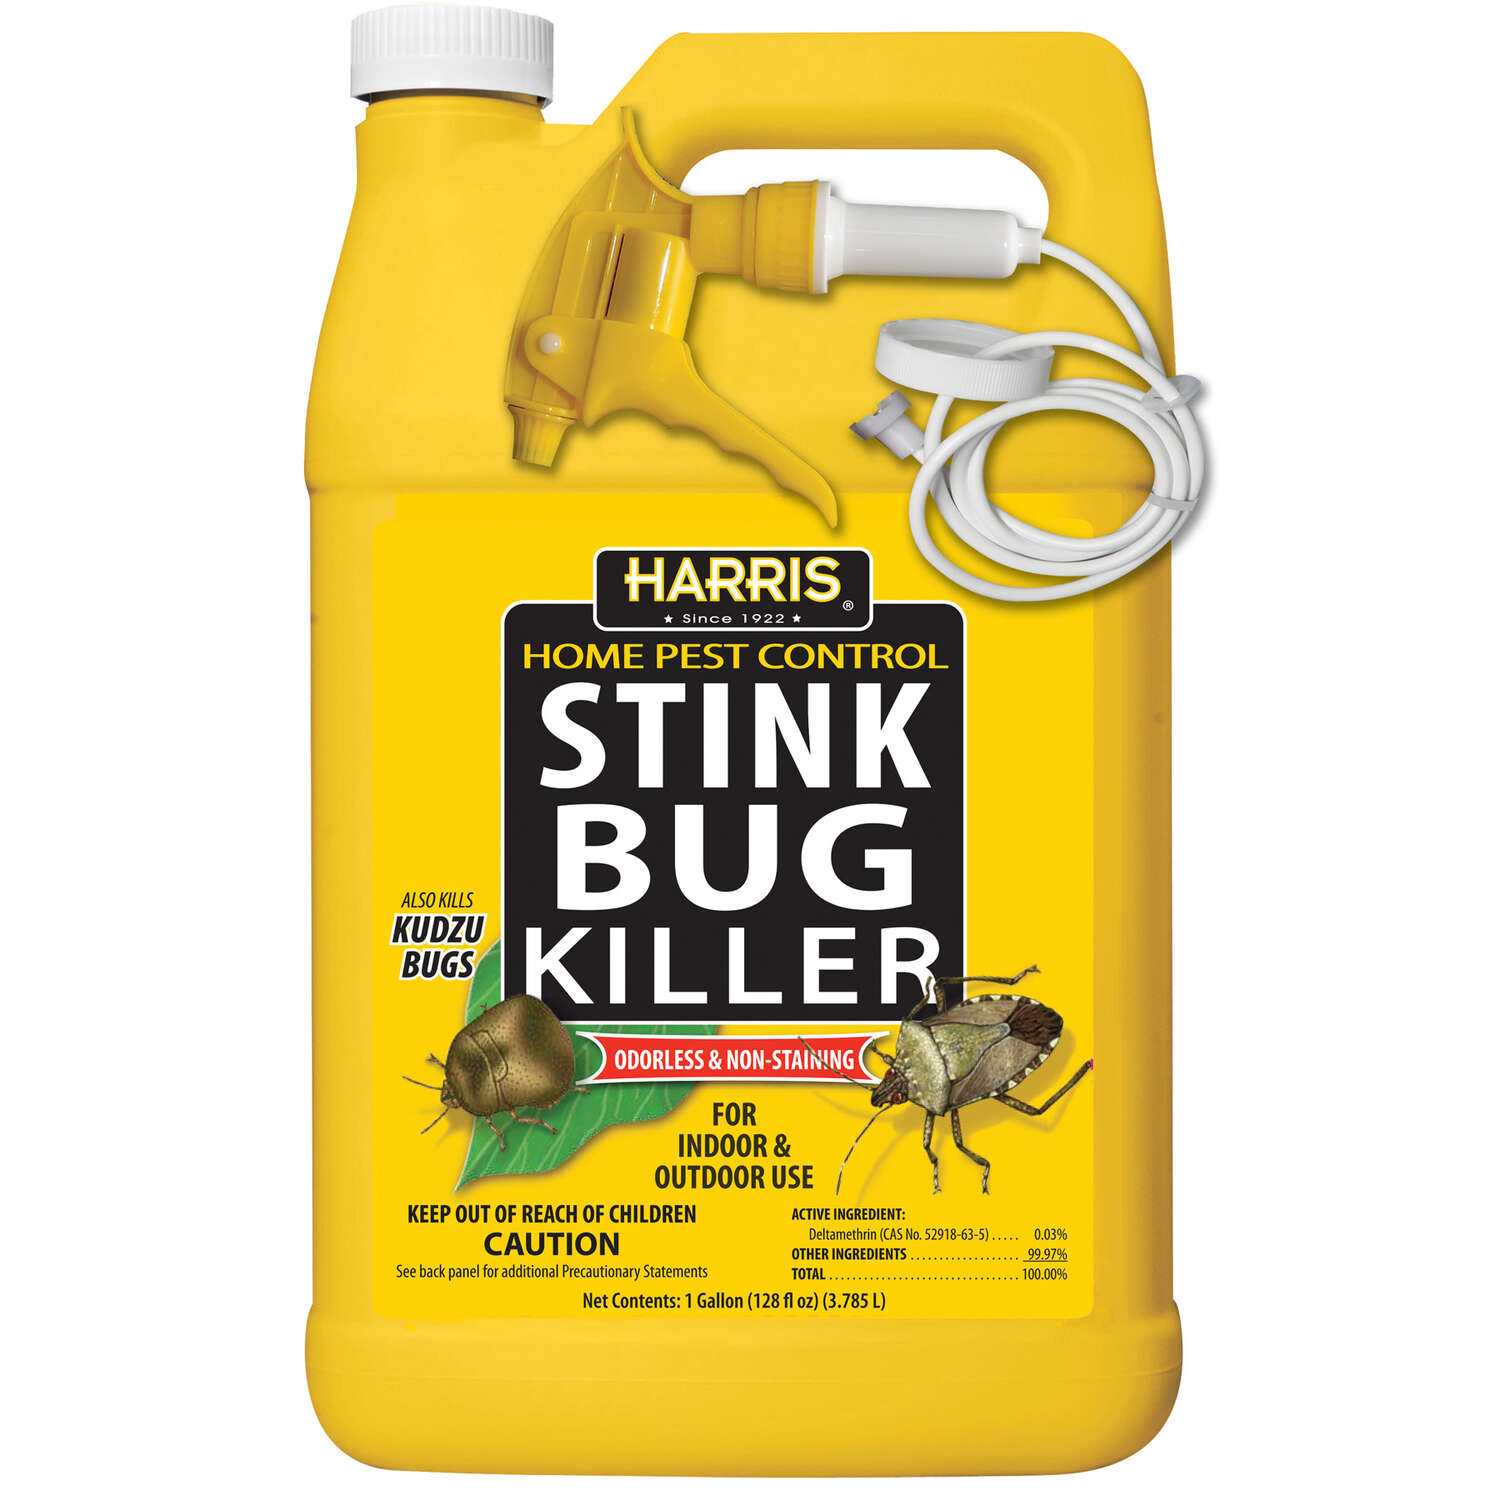 Harris Home Pest Control Liquid Stink Bug Killer 1 gal.